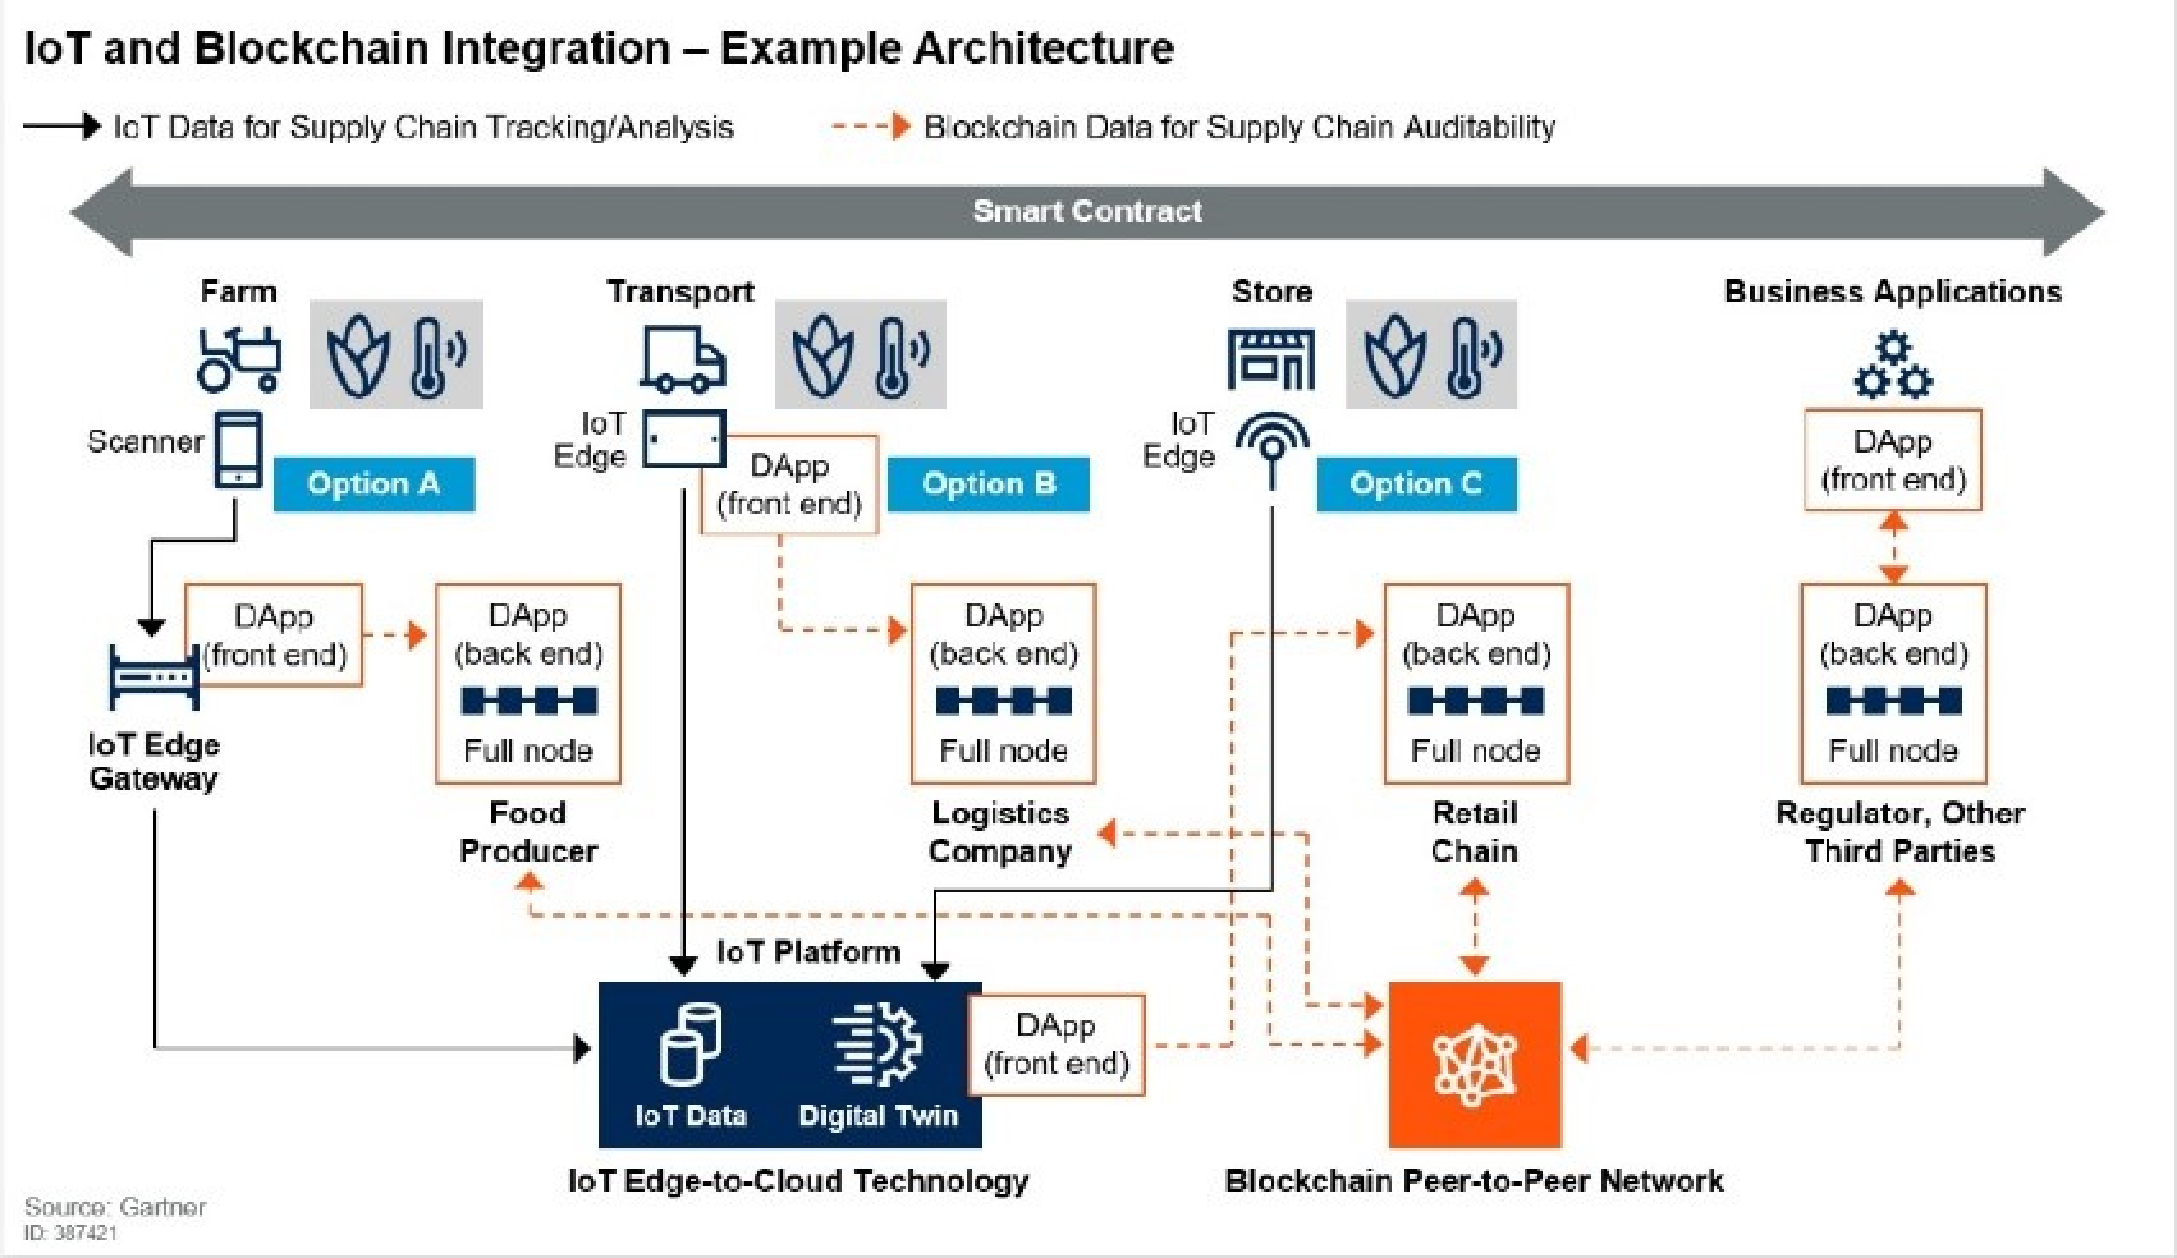 IoT and Blockchain Integration Diagram